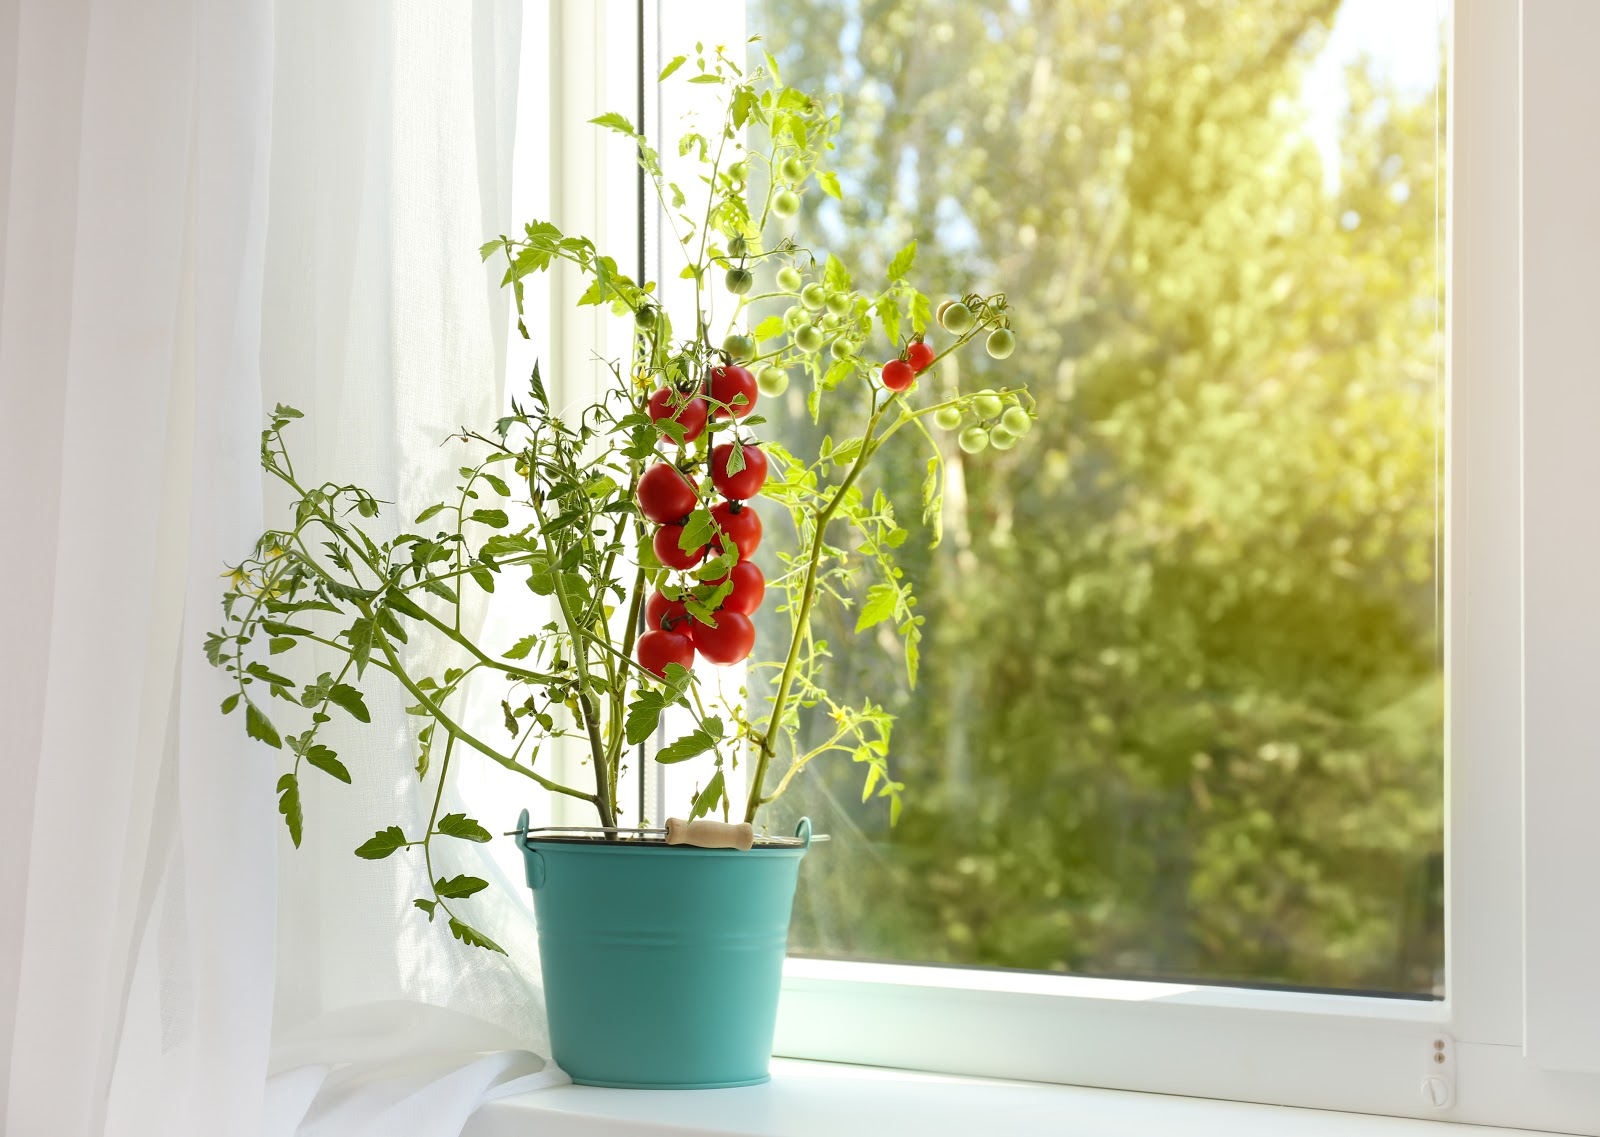 How to grow tomatoes in a pot: Tomato plant in bucket on window sill indoors.